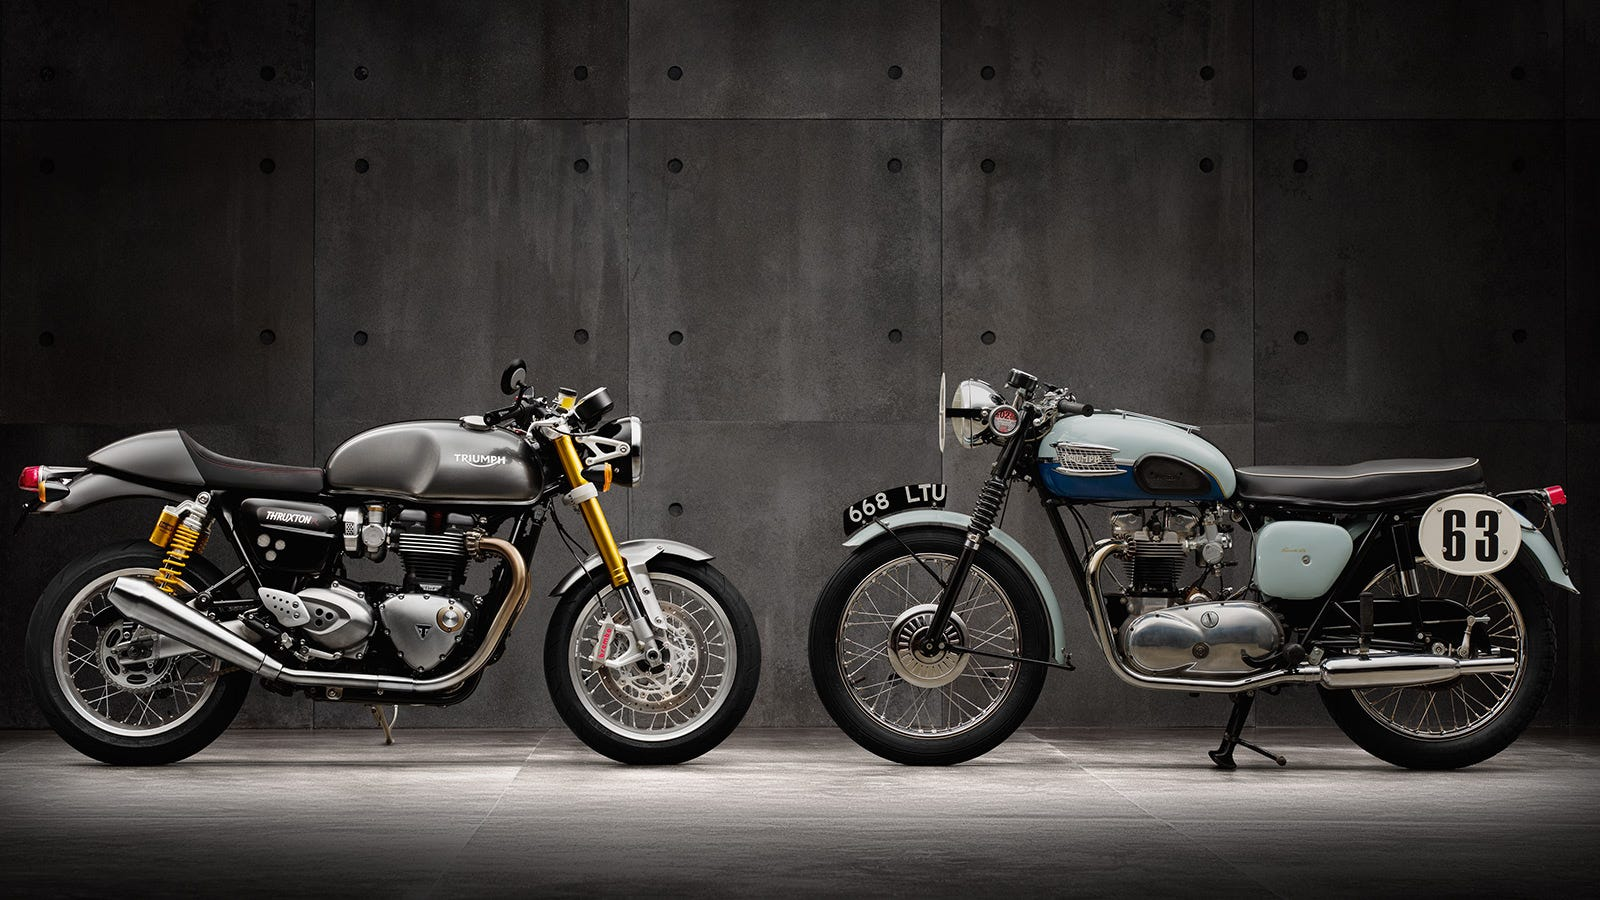 triumph thruxton r news, videos, reviews and gossip - jalopnik